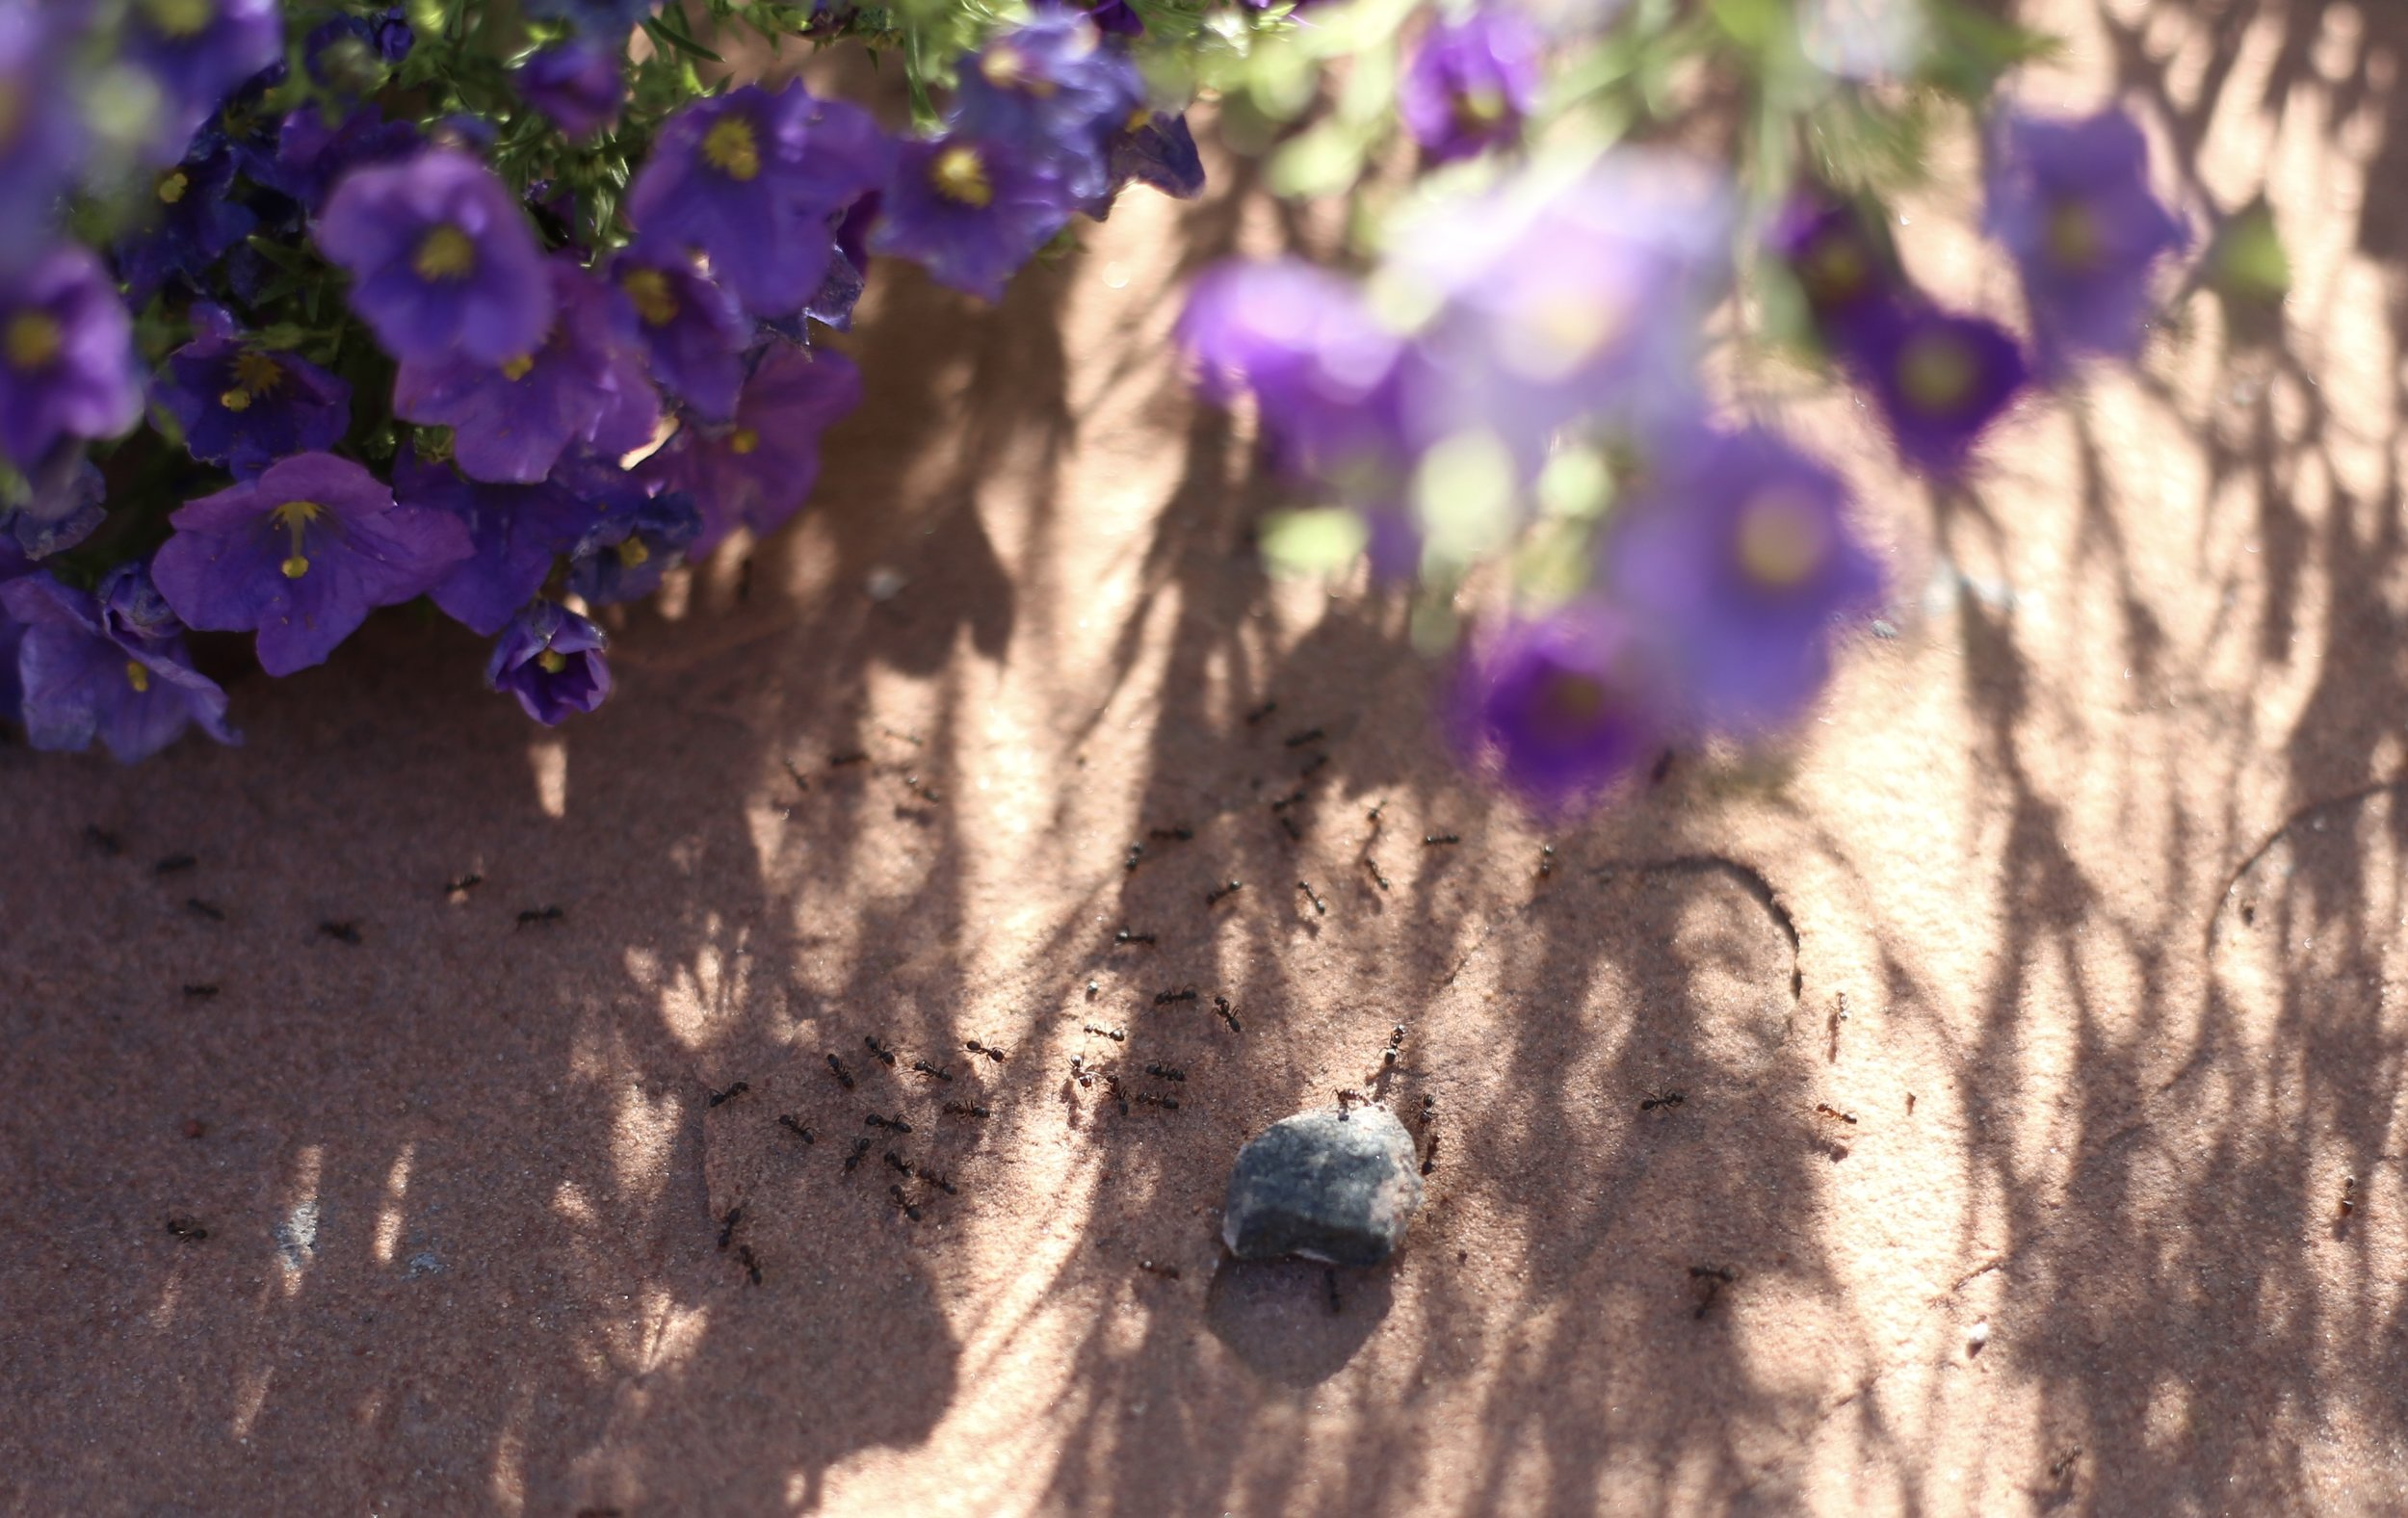 Busy ants beneath purple blooms.